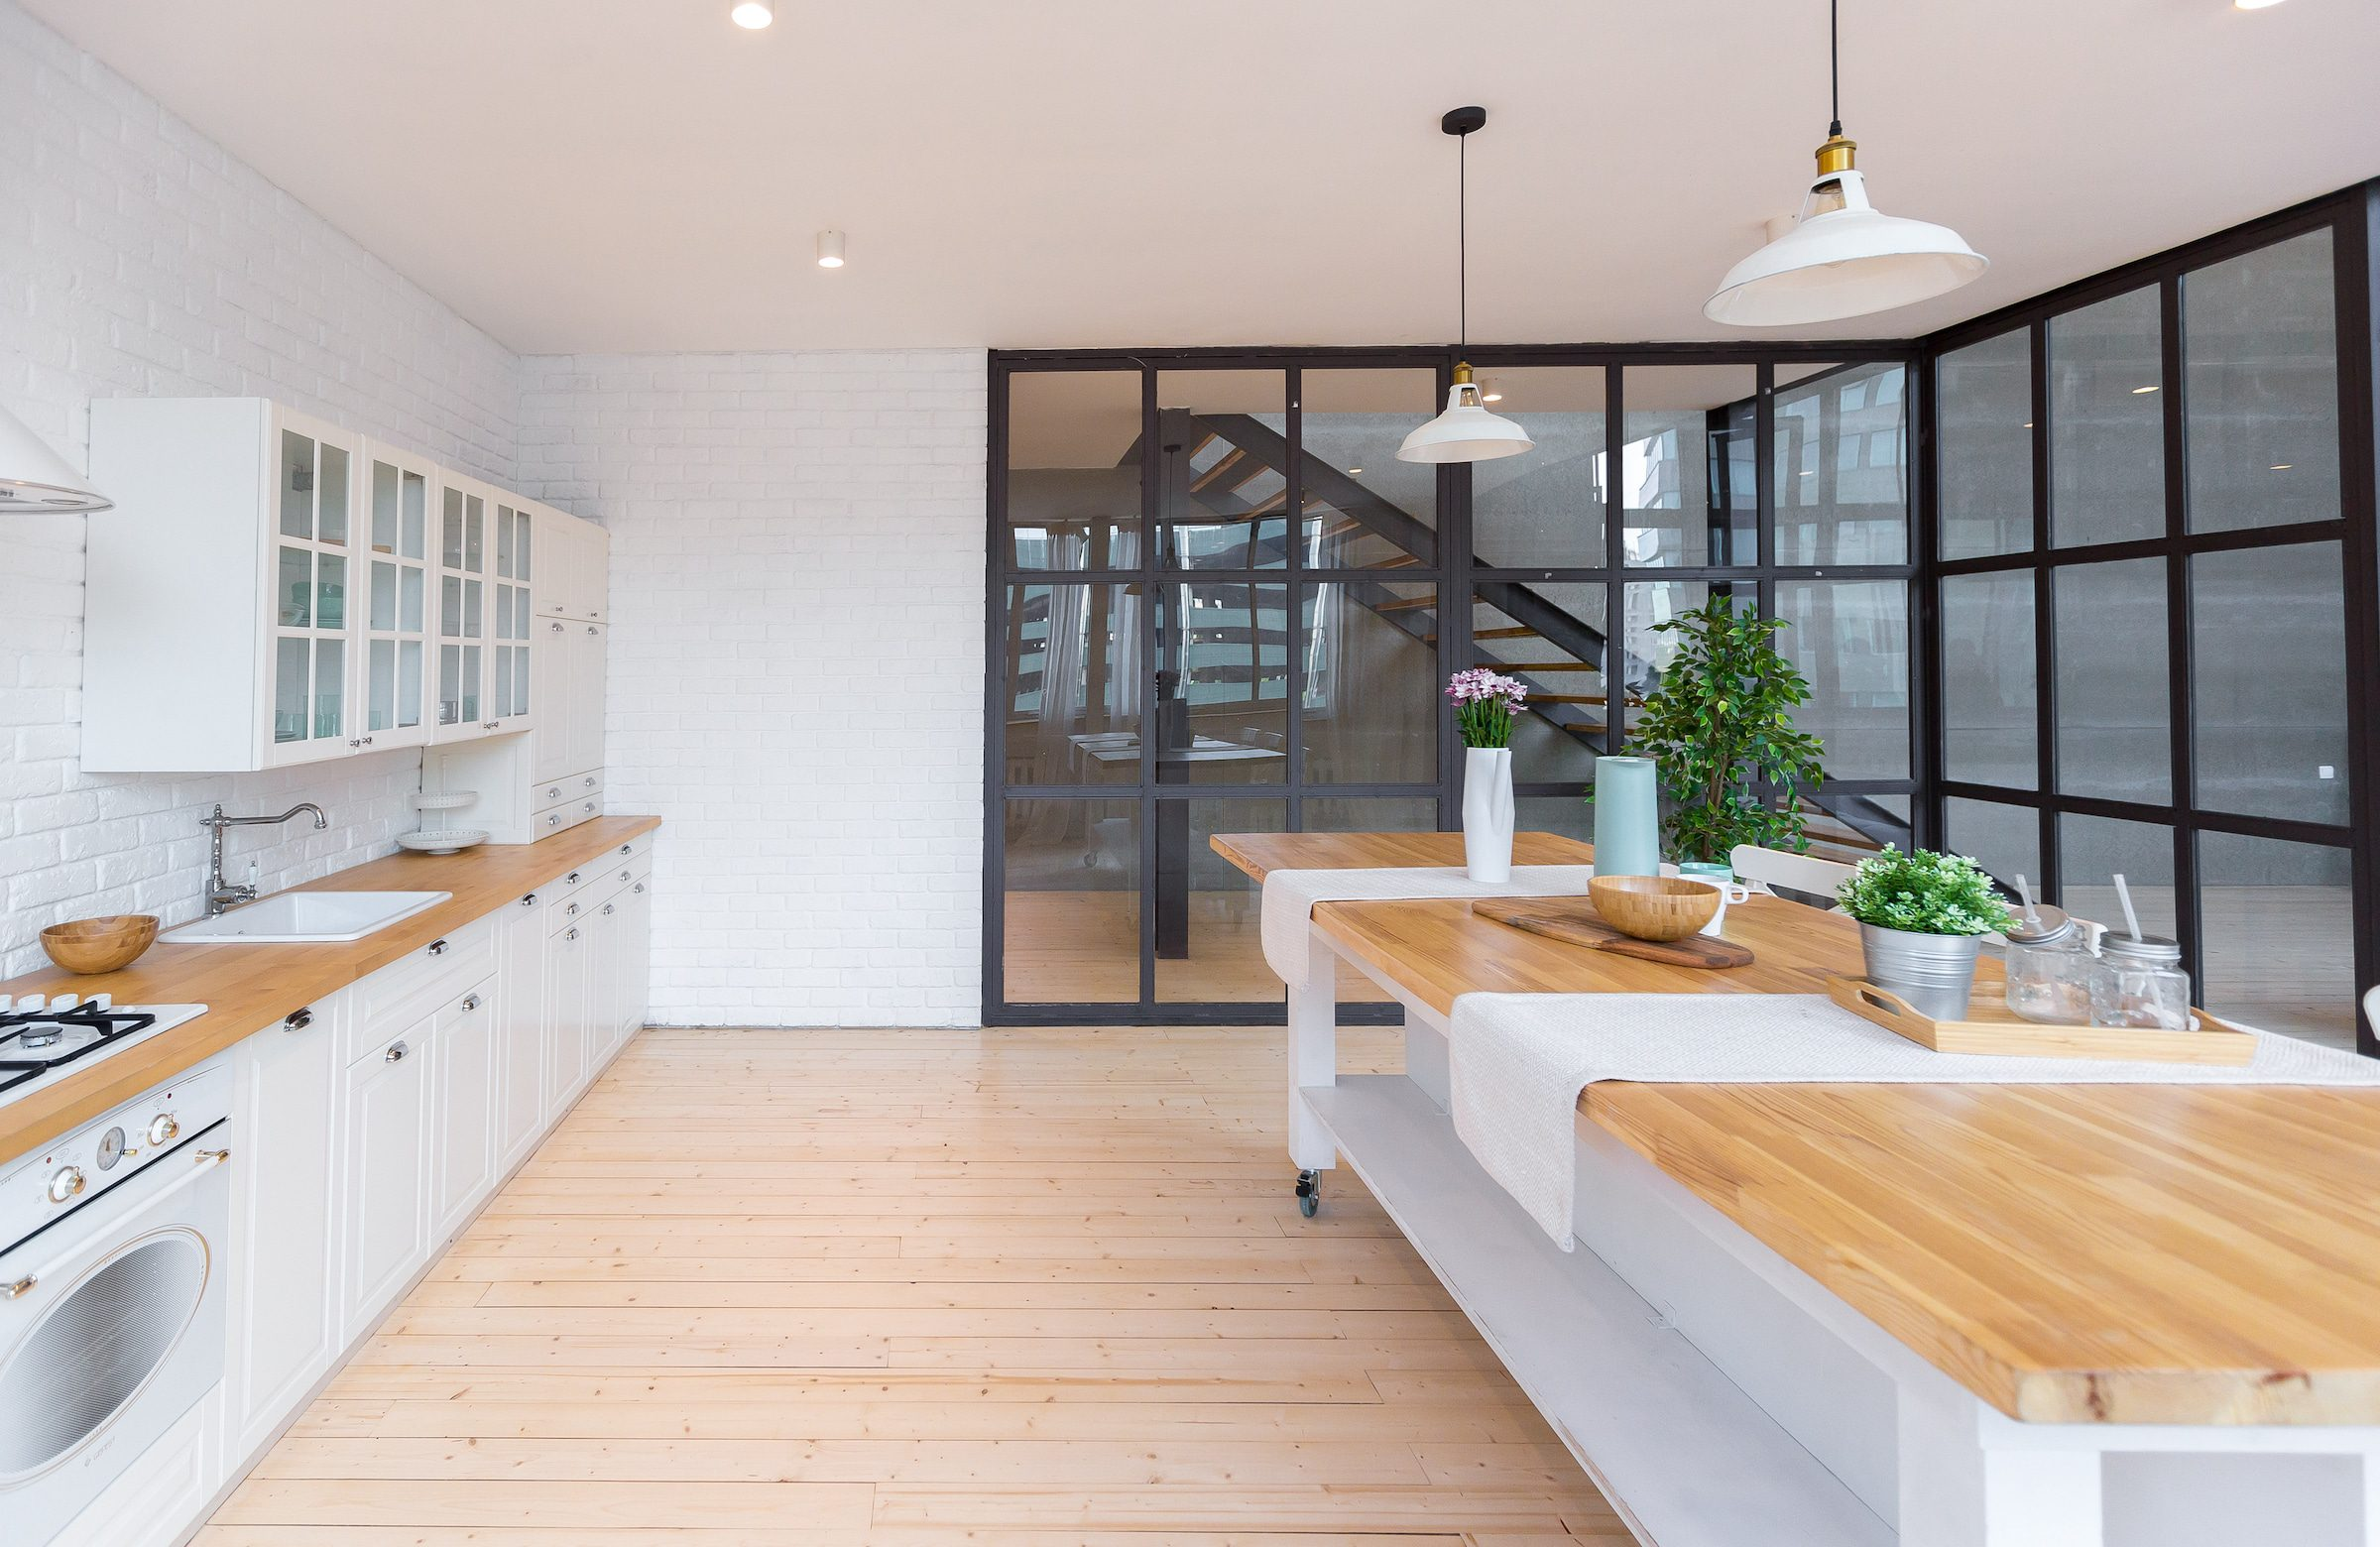 aluminium crittall style room divider in a modern kitchen